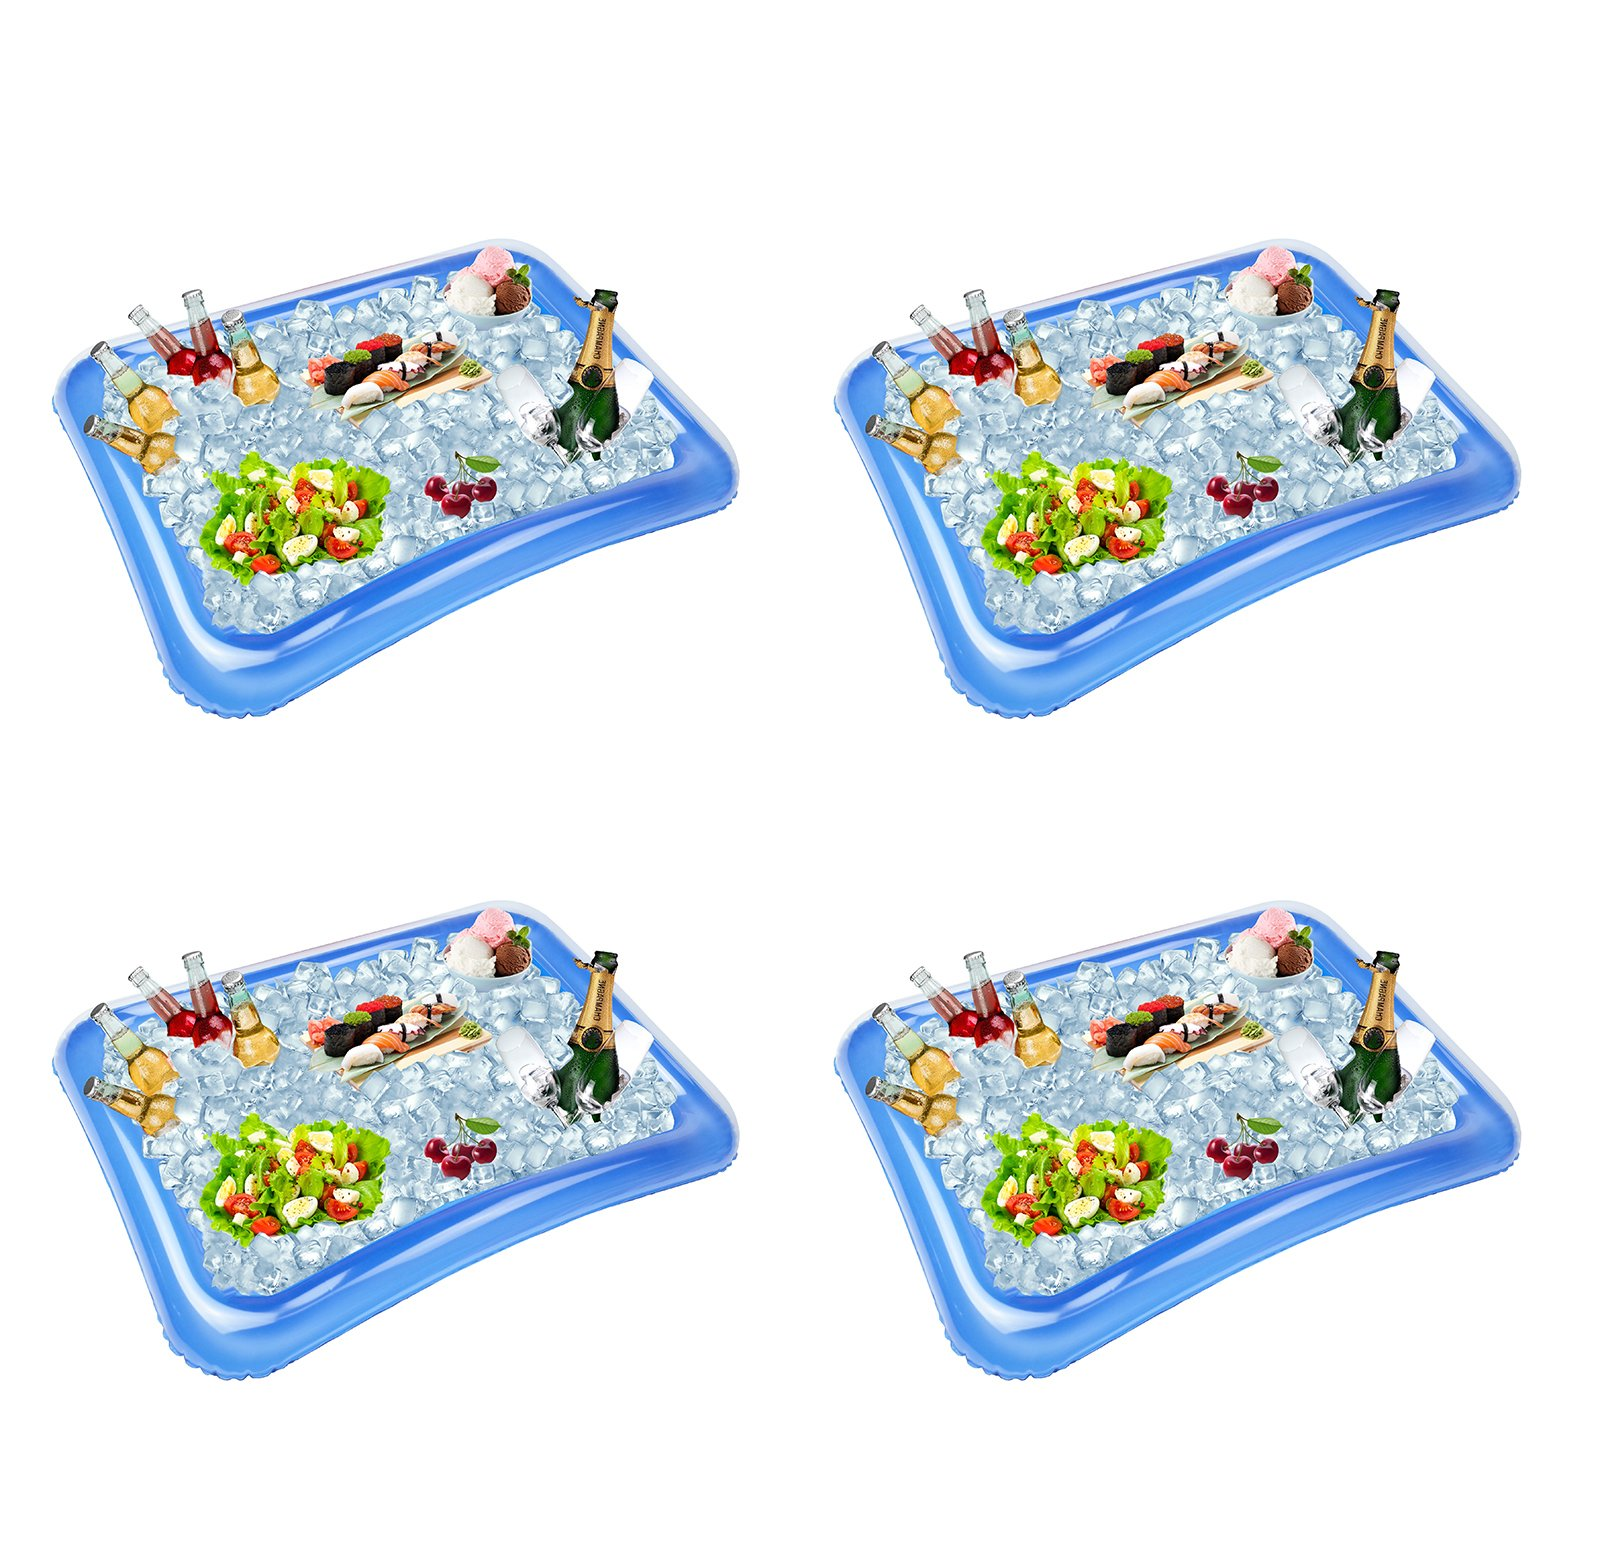 Festar 4-Pack Inflatable Ice Serving Bar Coolers for Parties, Salad BBQ Picnic Ice Food Drinks Buffet Server Tray for Indoor Outdoor Party